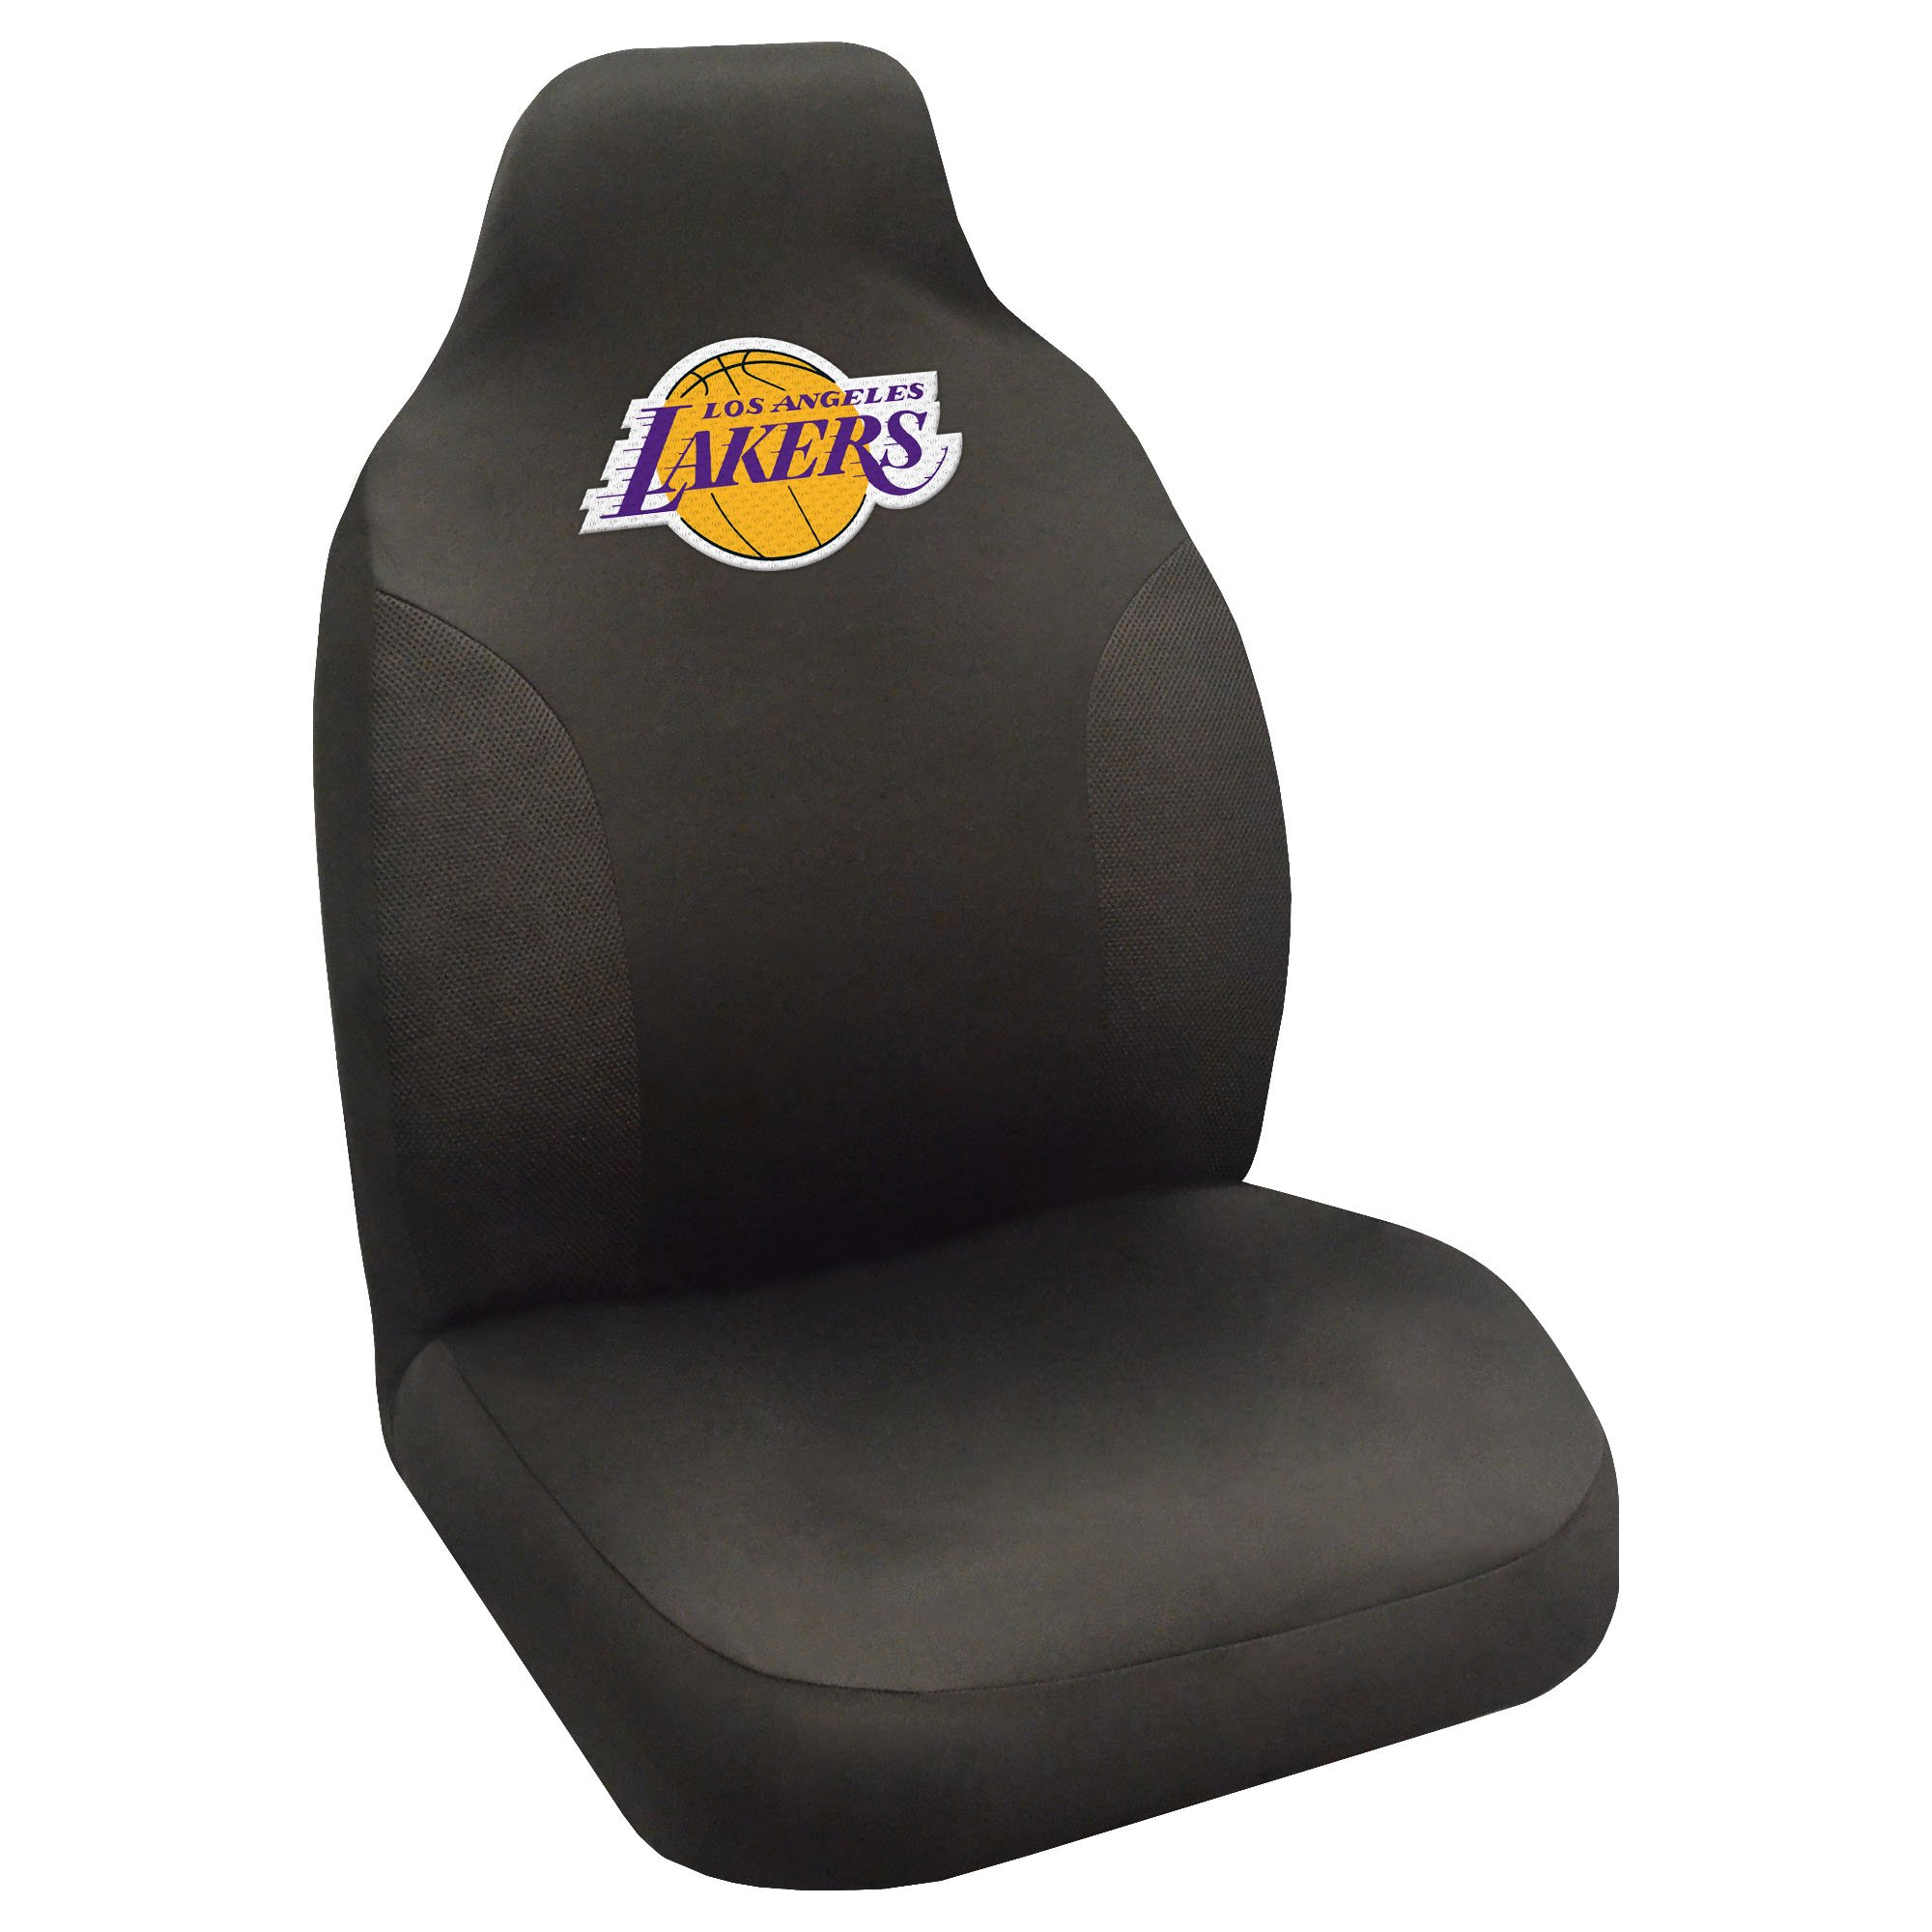 Fanmats NBA Los Angeles Lakers Polyester Seat Cover by Fanmats